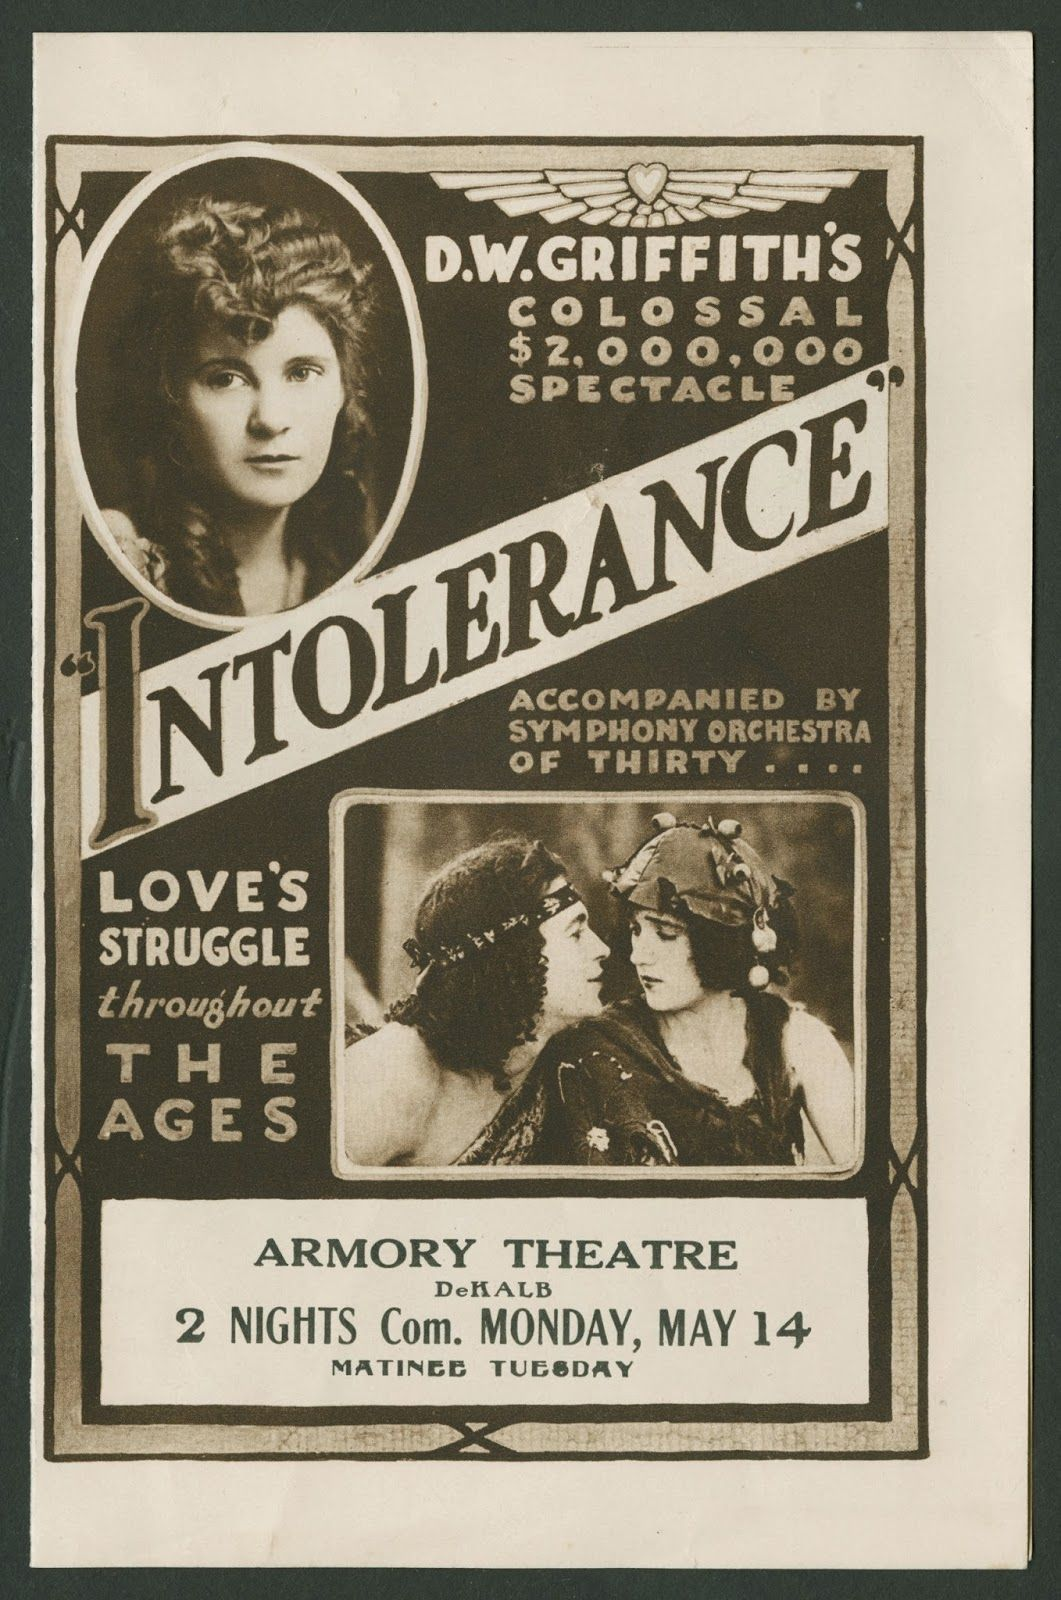 Image result for dw griffith intolerance talmdage